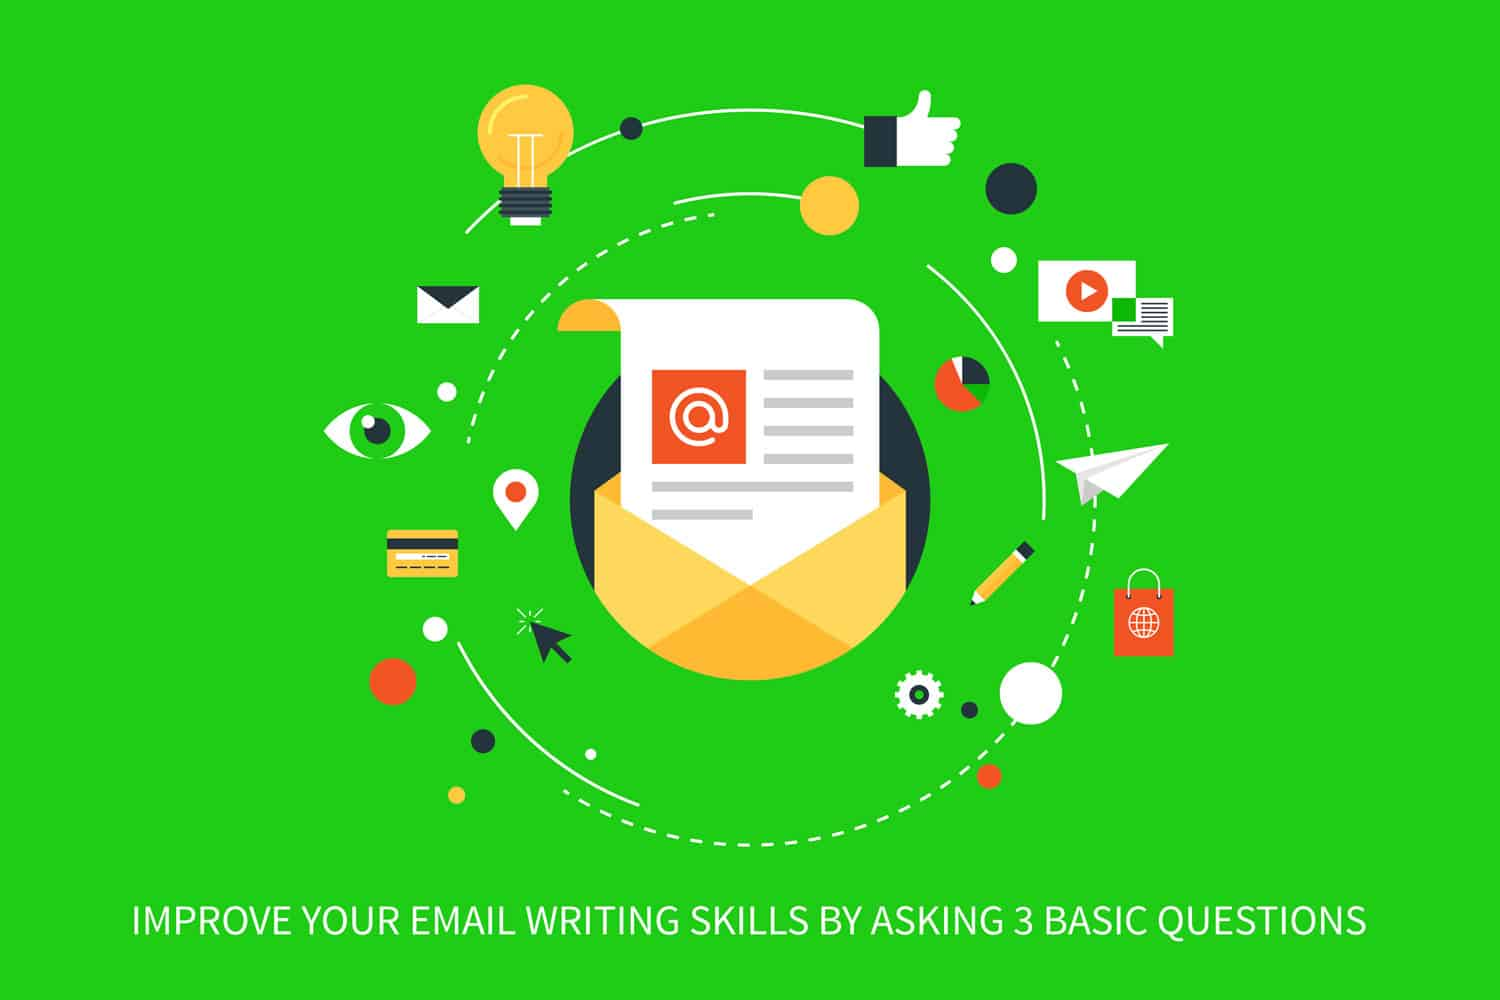 Improve Your Email Writing Skills by Asking 3 Basic Questions